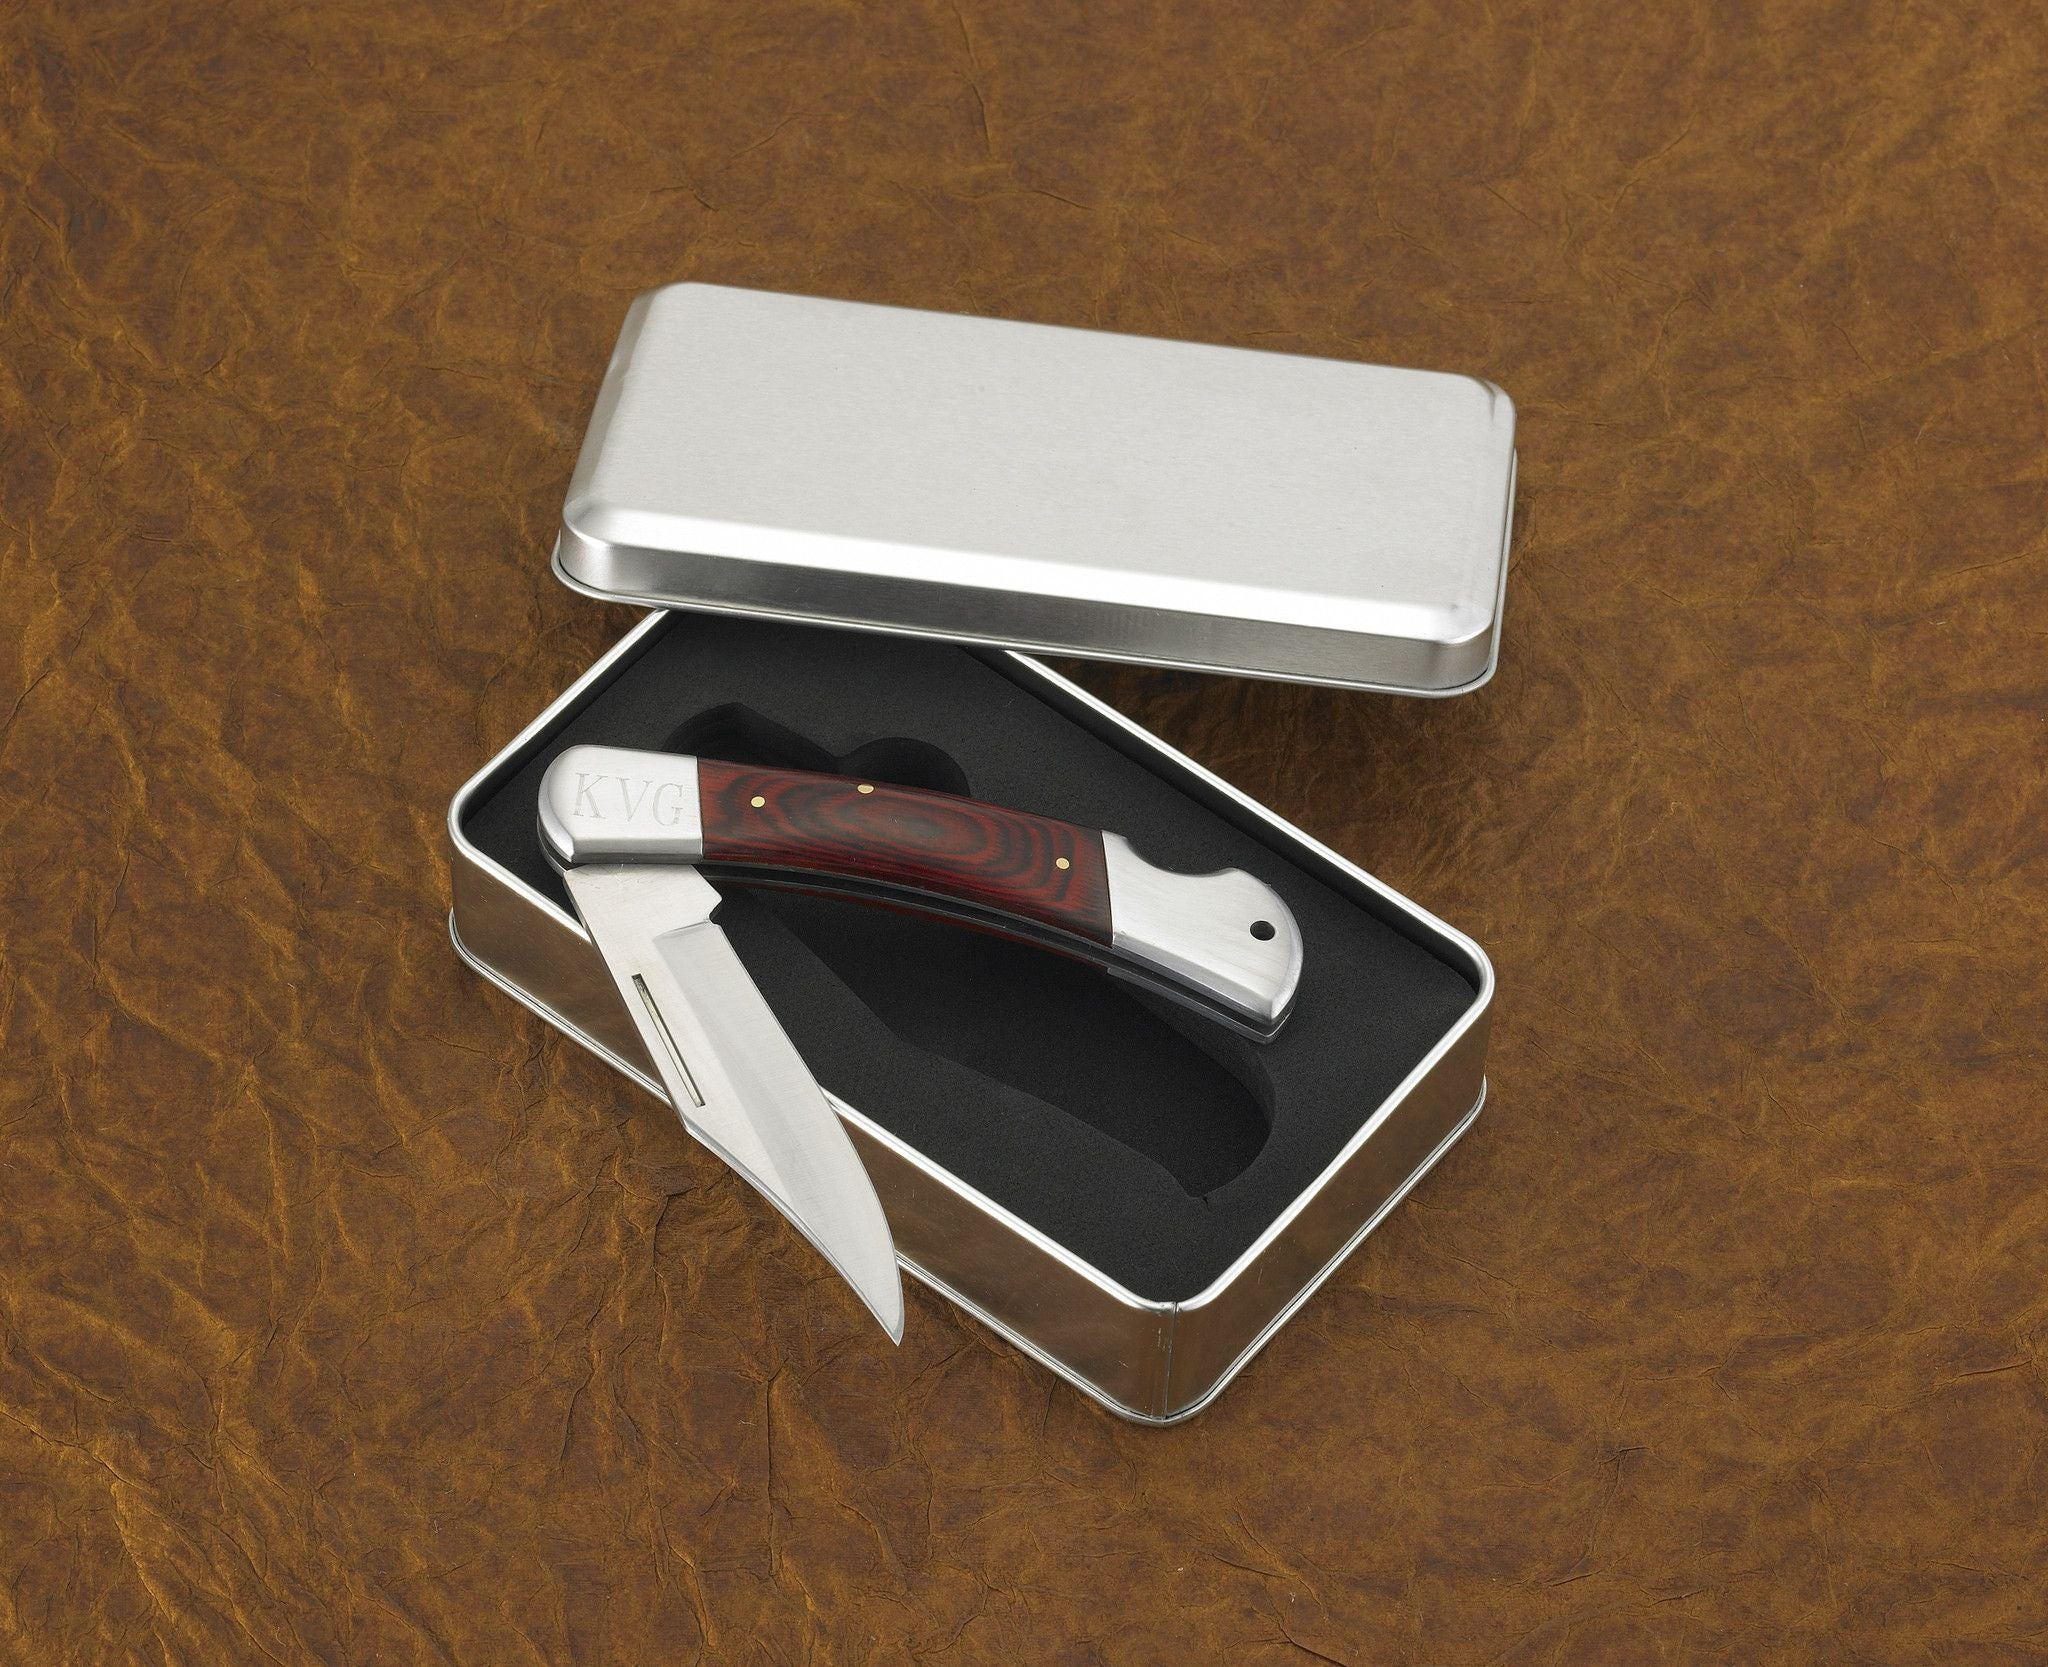 Personalized Pocket Knife - Yukon - Wood Handle - Lock Back